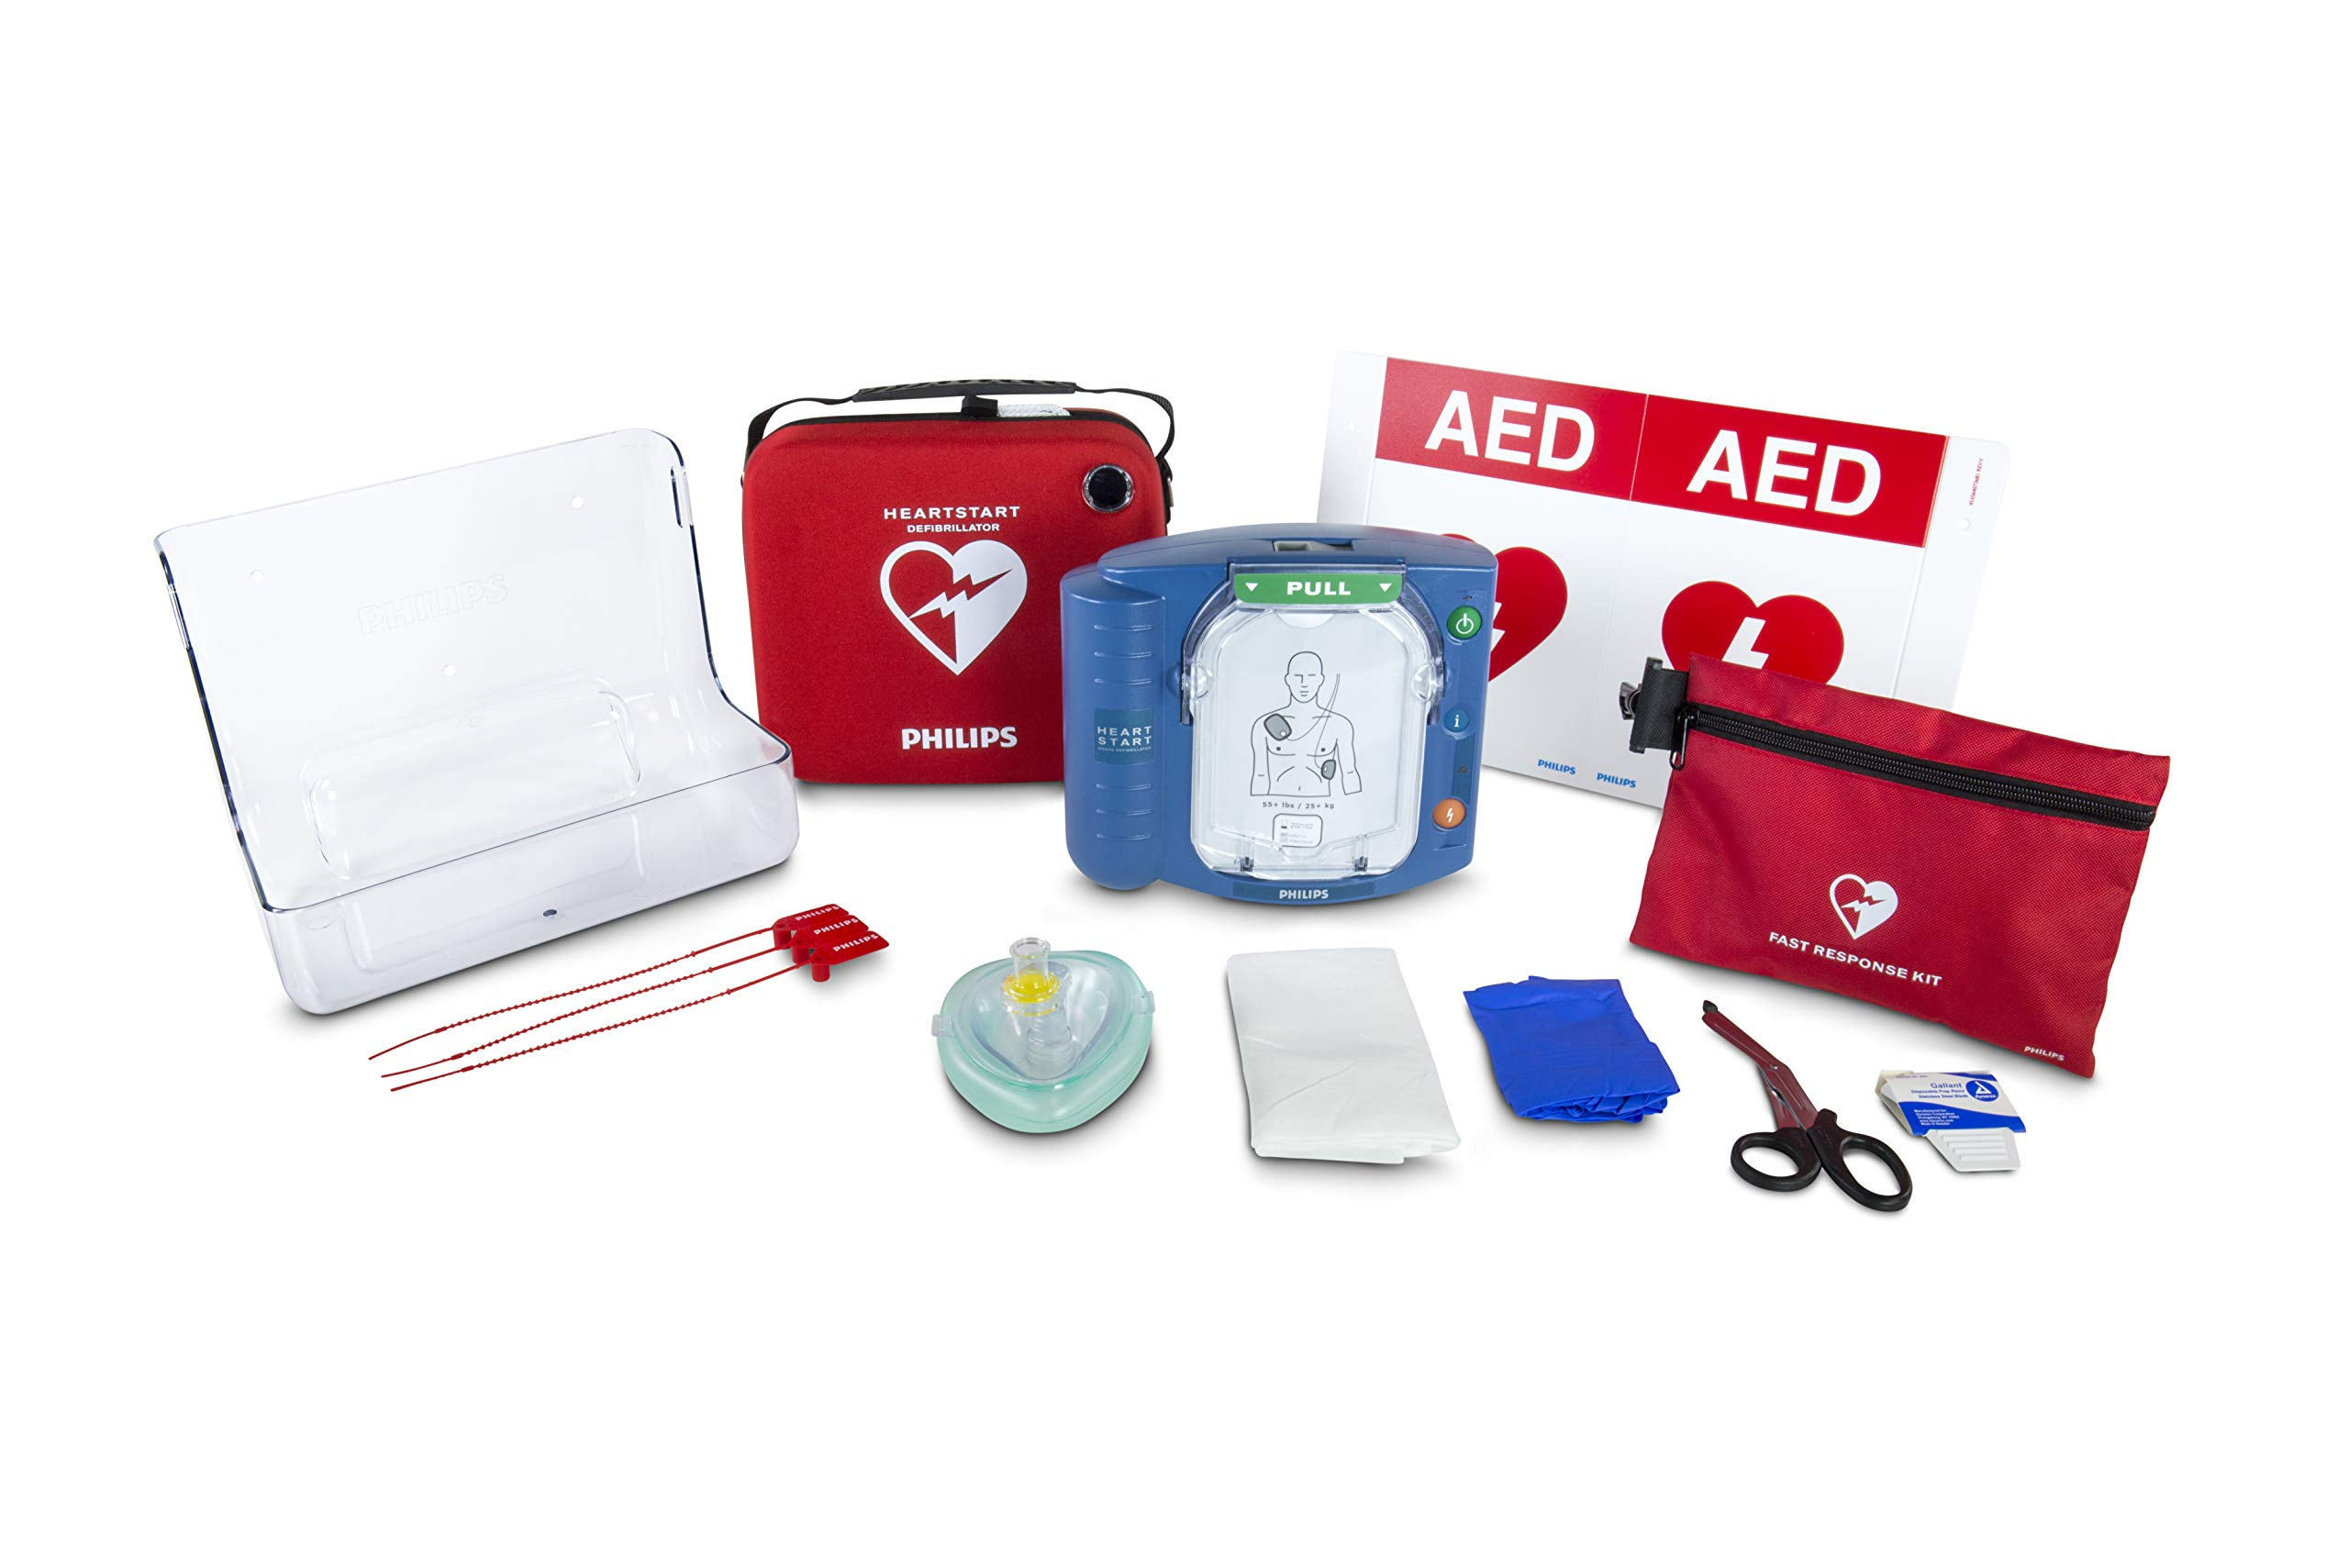 Philips HeartStart OnSite AED Defibrillator Value Package with Slim Carry Case, AED Wall Sign, Fast Response Kit and AED Wall Mount by HeartStart